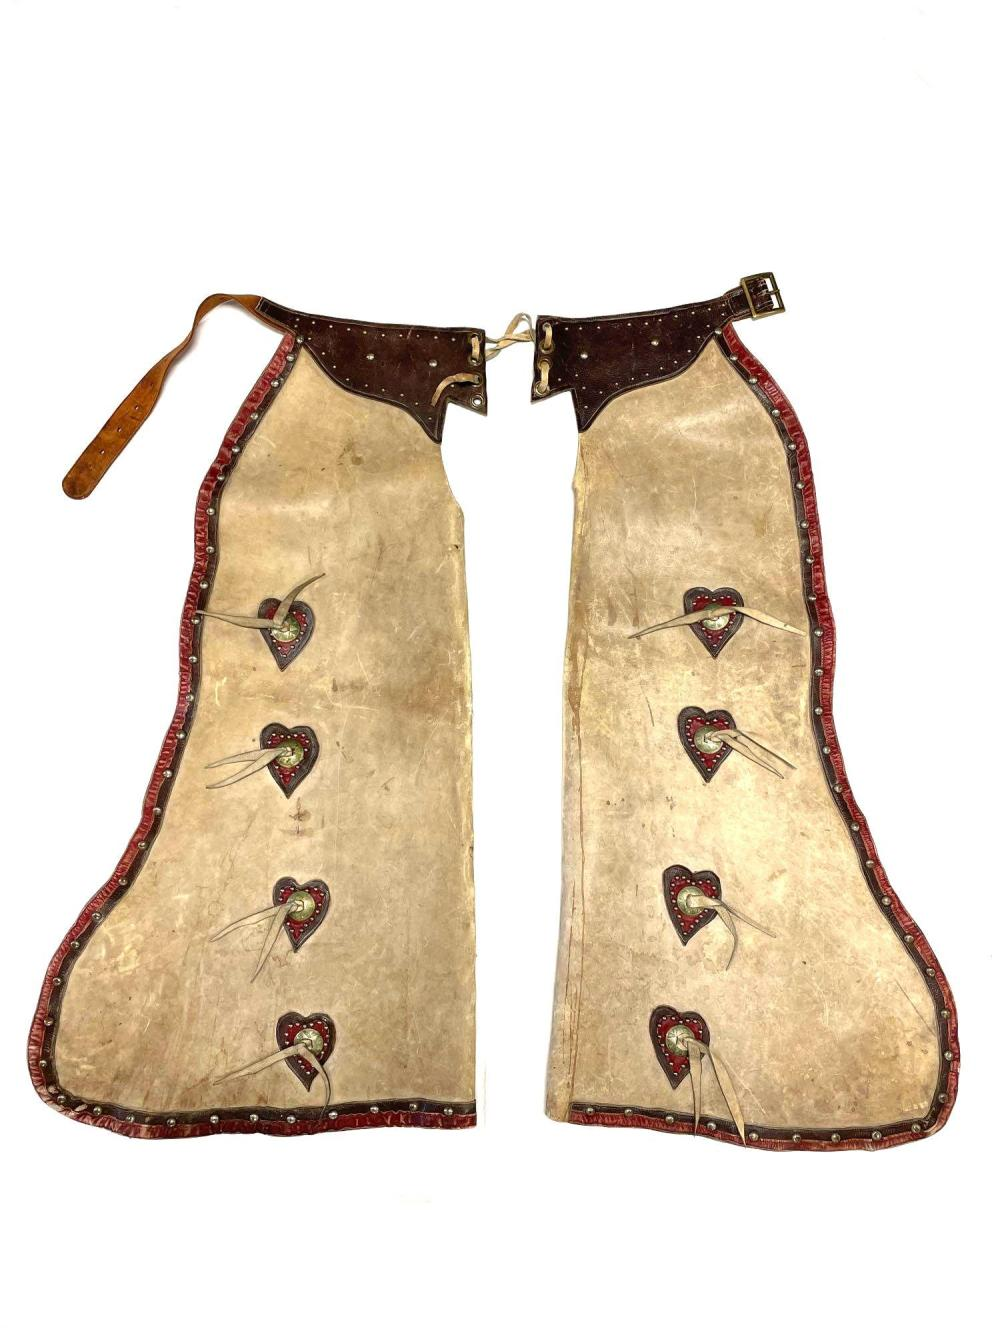 Early 20th c. Western Cowboy Leather Chaps